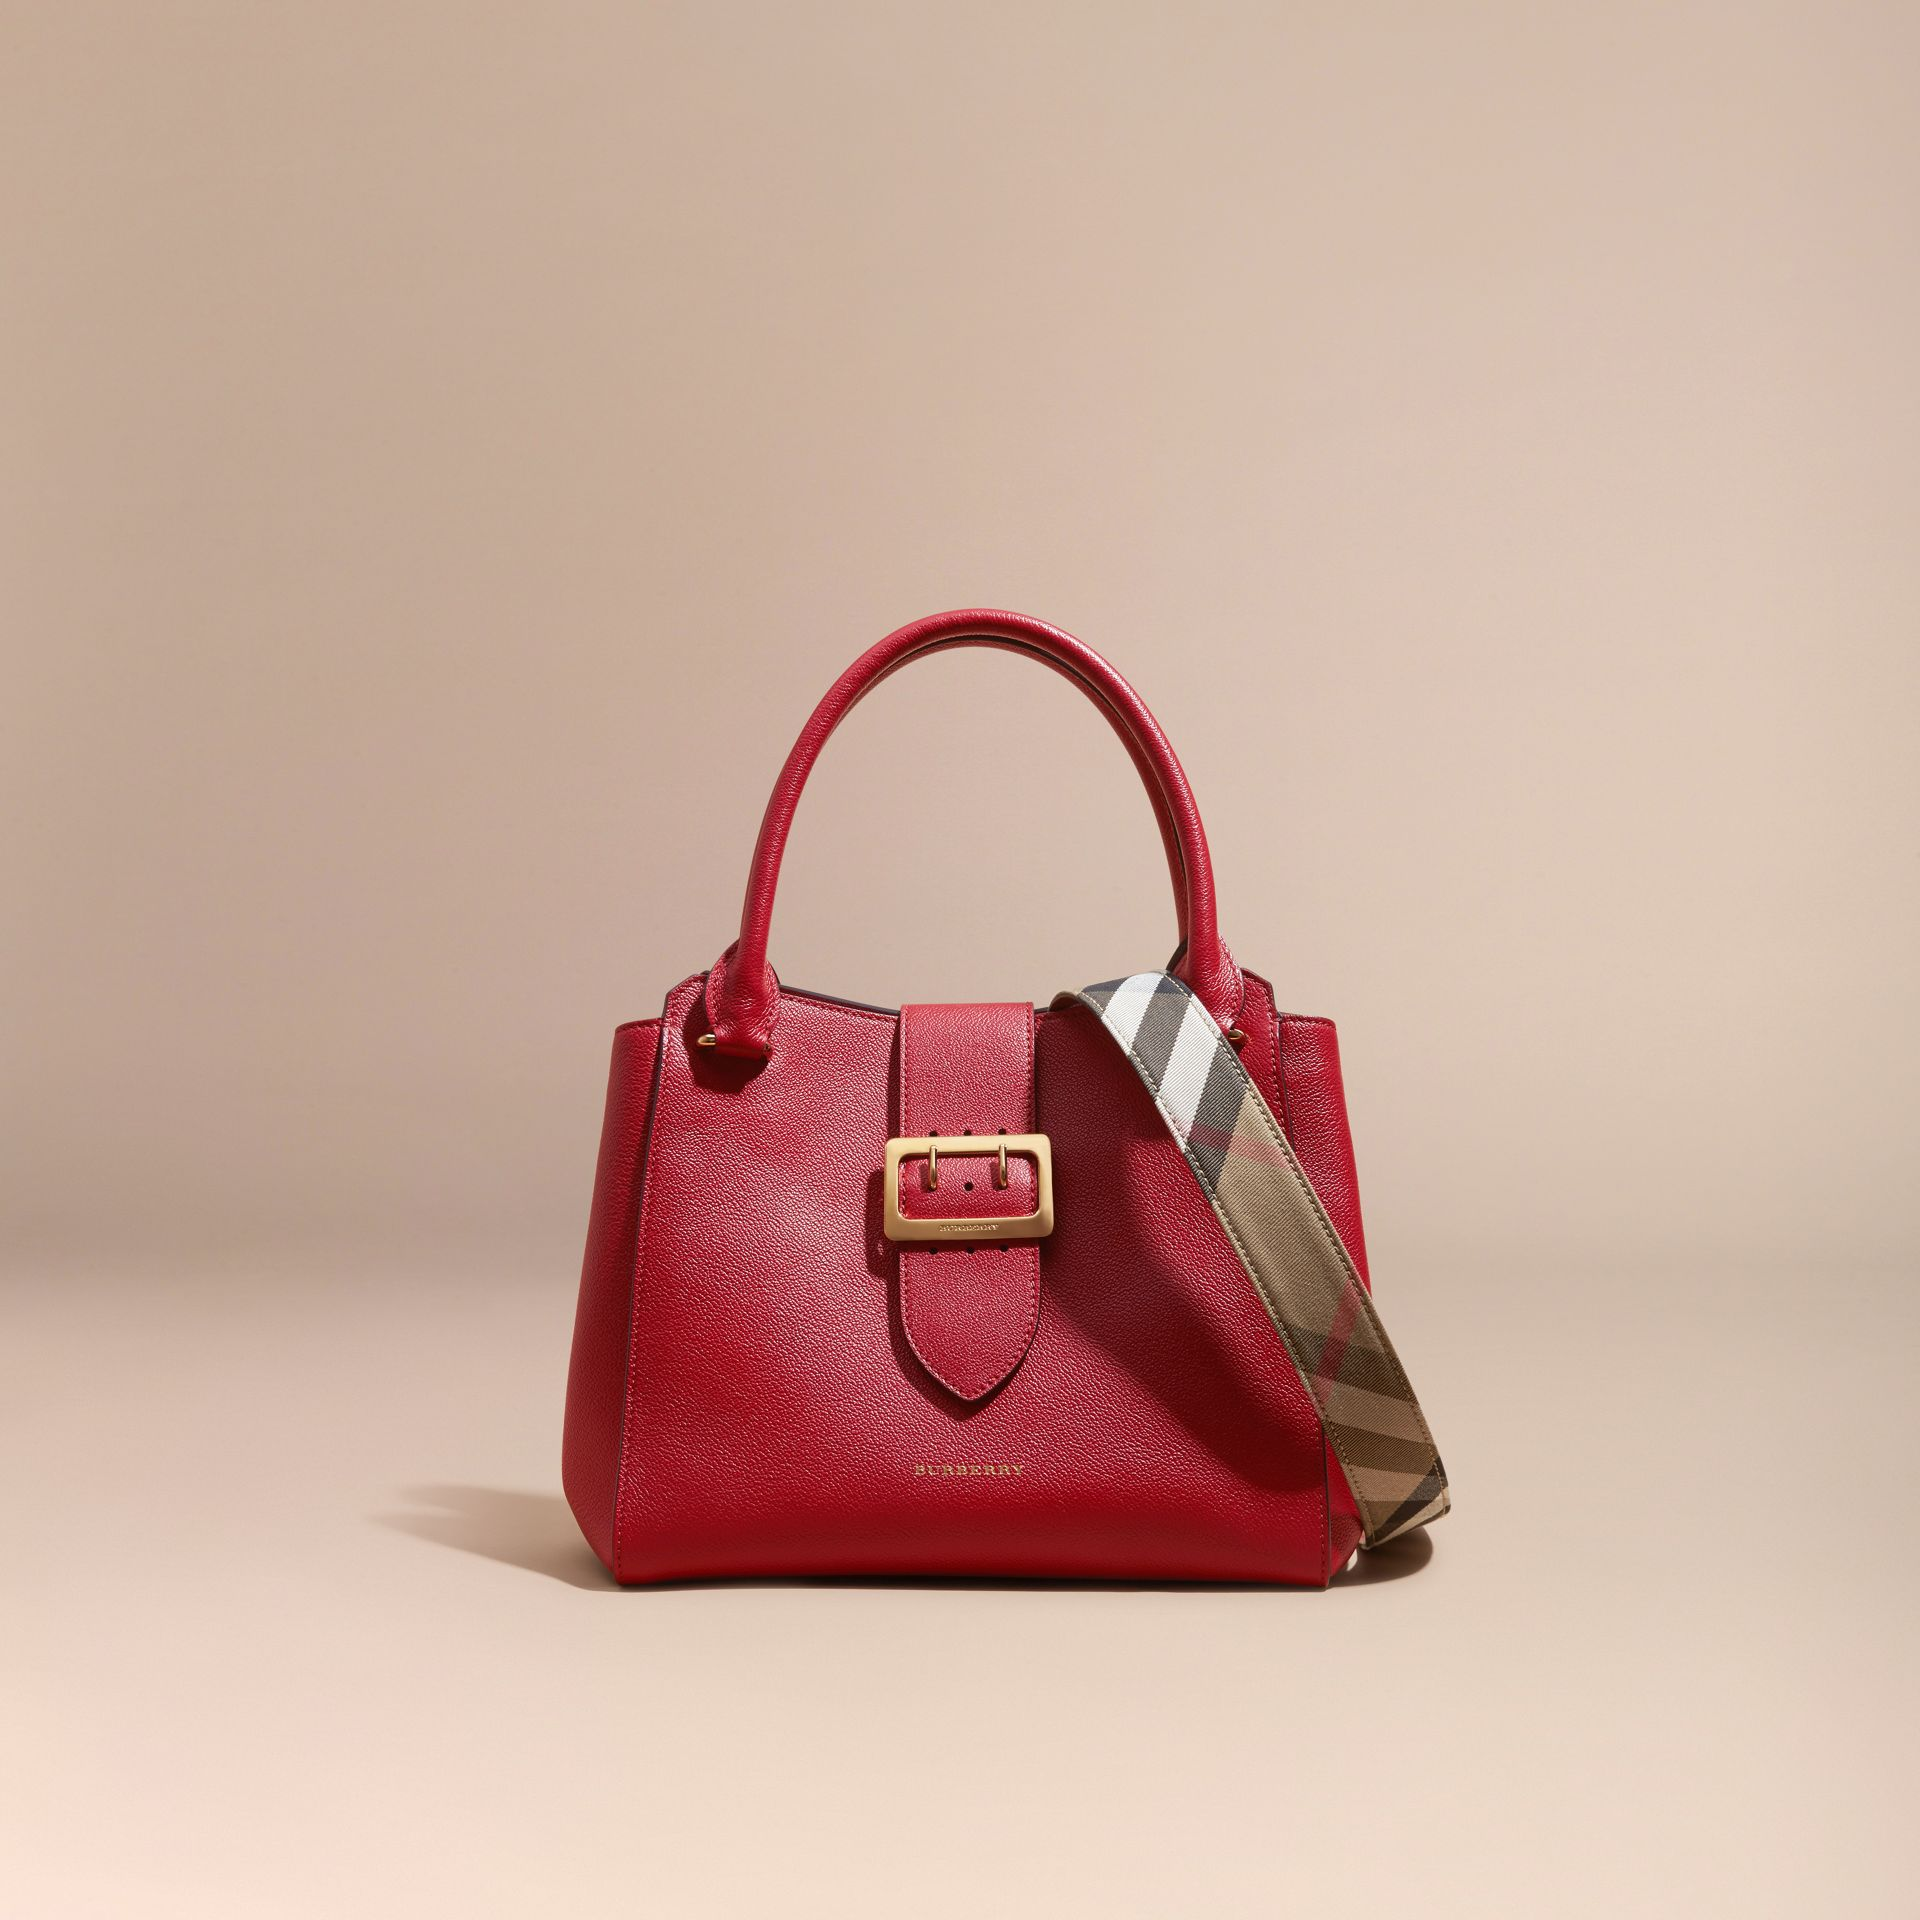 The Medium Buckle Tote in Grainy Leather in Parade Red - Women | Burberry - gallery image 9